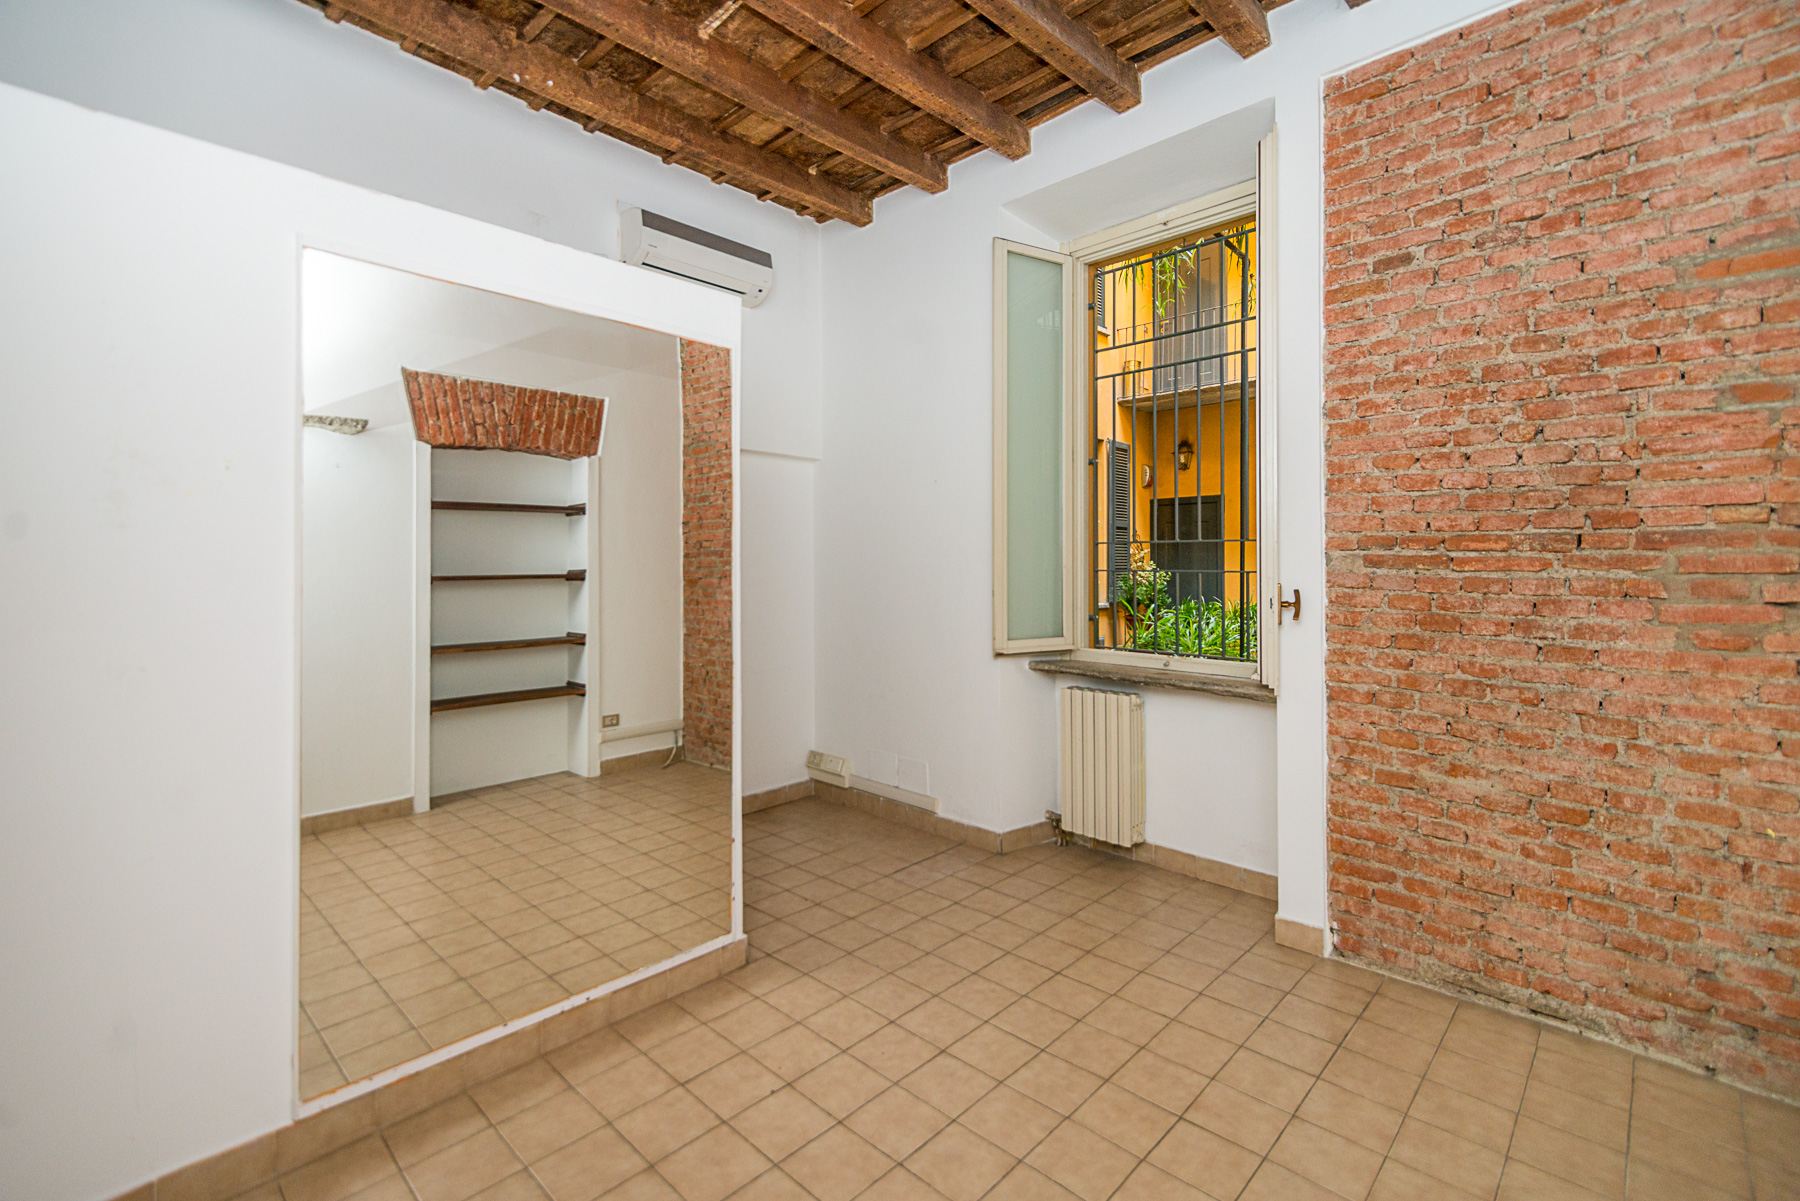 Additional photo for property listing at Bright apartament in the heart of Brera Via San Carpoforo Milano, Milan 20121 Italia